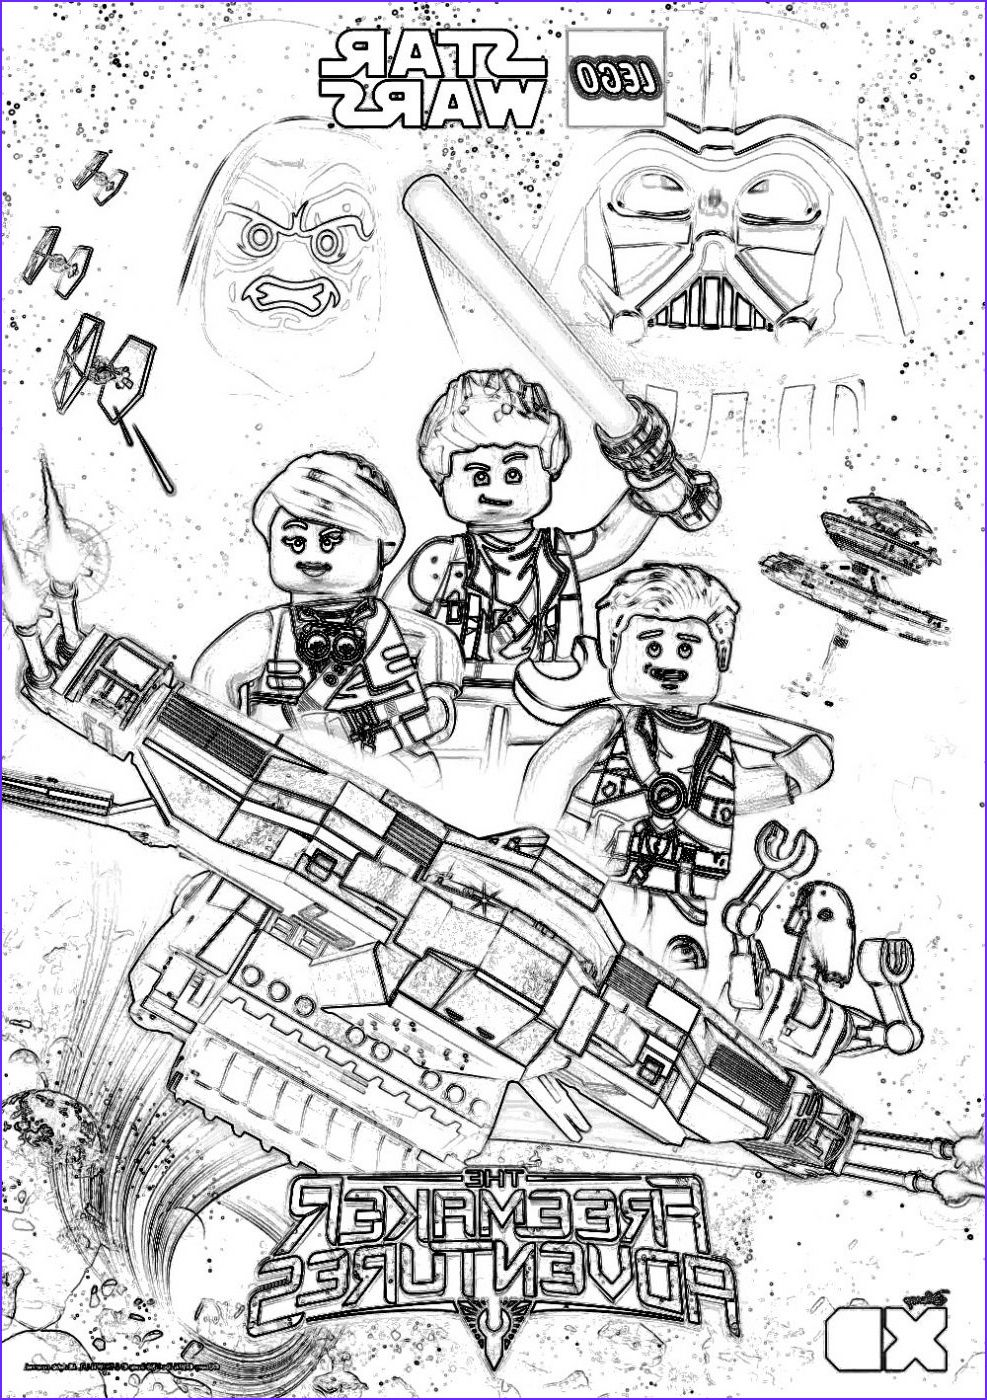 Lego Star Wars Coloring Pages The Freemaker Adventures Ilustracao Crianca Criancas Ilustracao [ 1400 x 987 Pixel ]